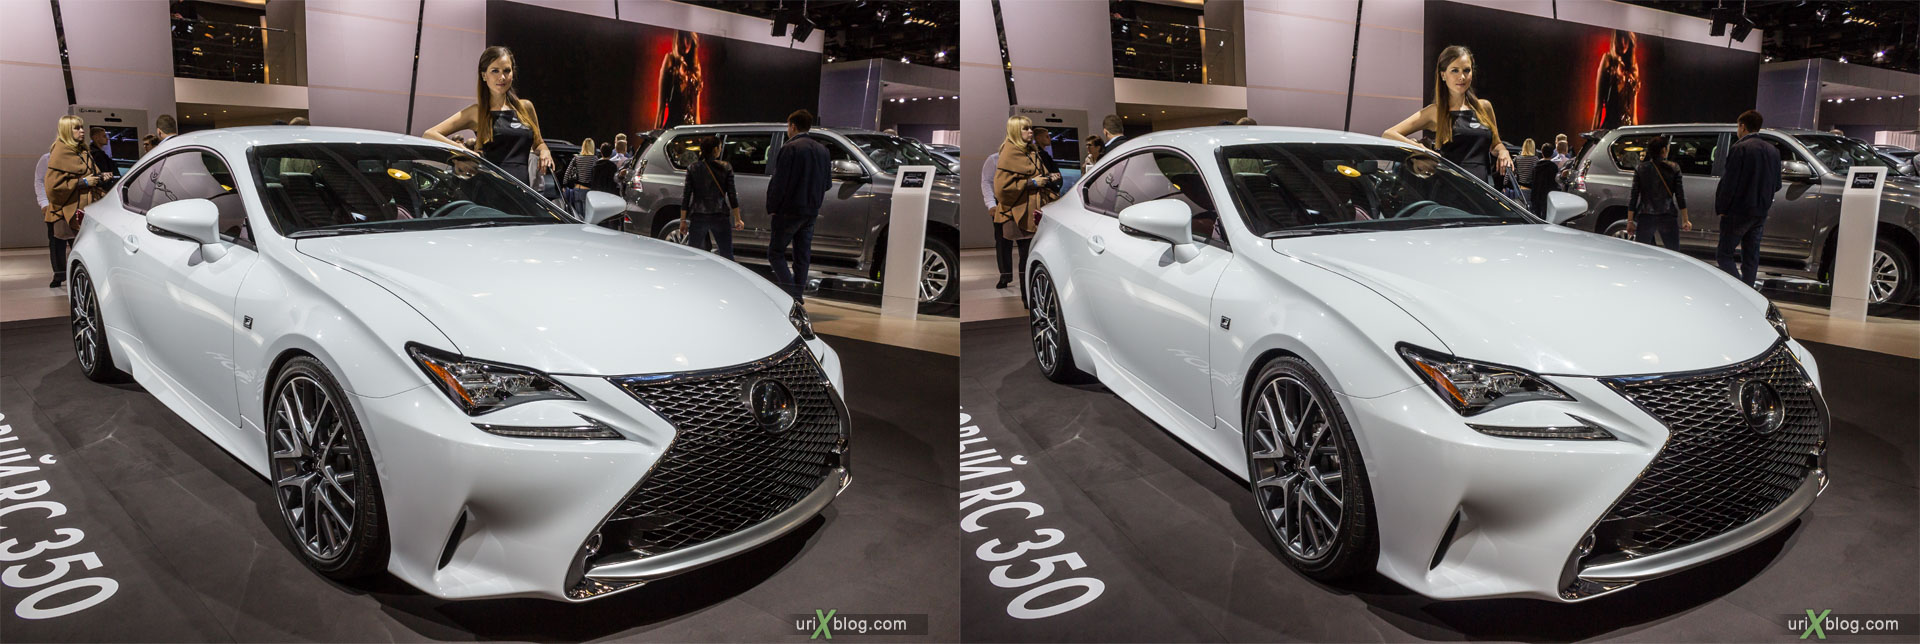 Lexus RC 350, Moscow International Automobile Salon 2014, MIAS 2014, girls, models, Crocus Expo, Moscow, Russia, 3D, stereo pair, cross-eyed, crossview, cross view stereo pair, stereoscopic, 2014